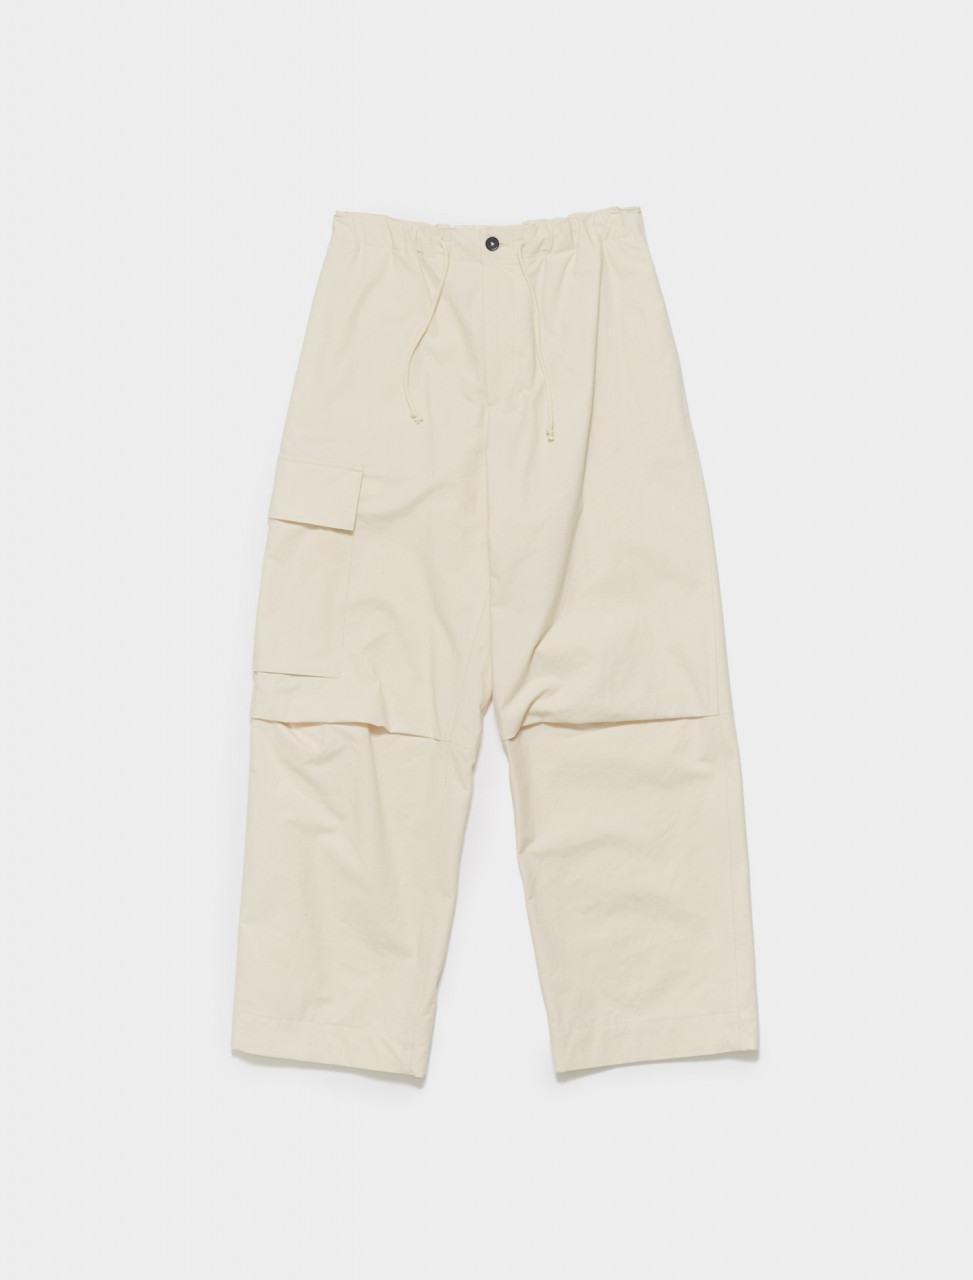 JPUS310705-MS242600-280 JIL SANDER WASHED CARGO PANTS IN OPEN BEIGE